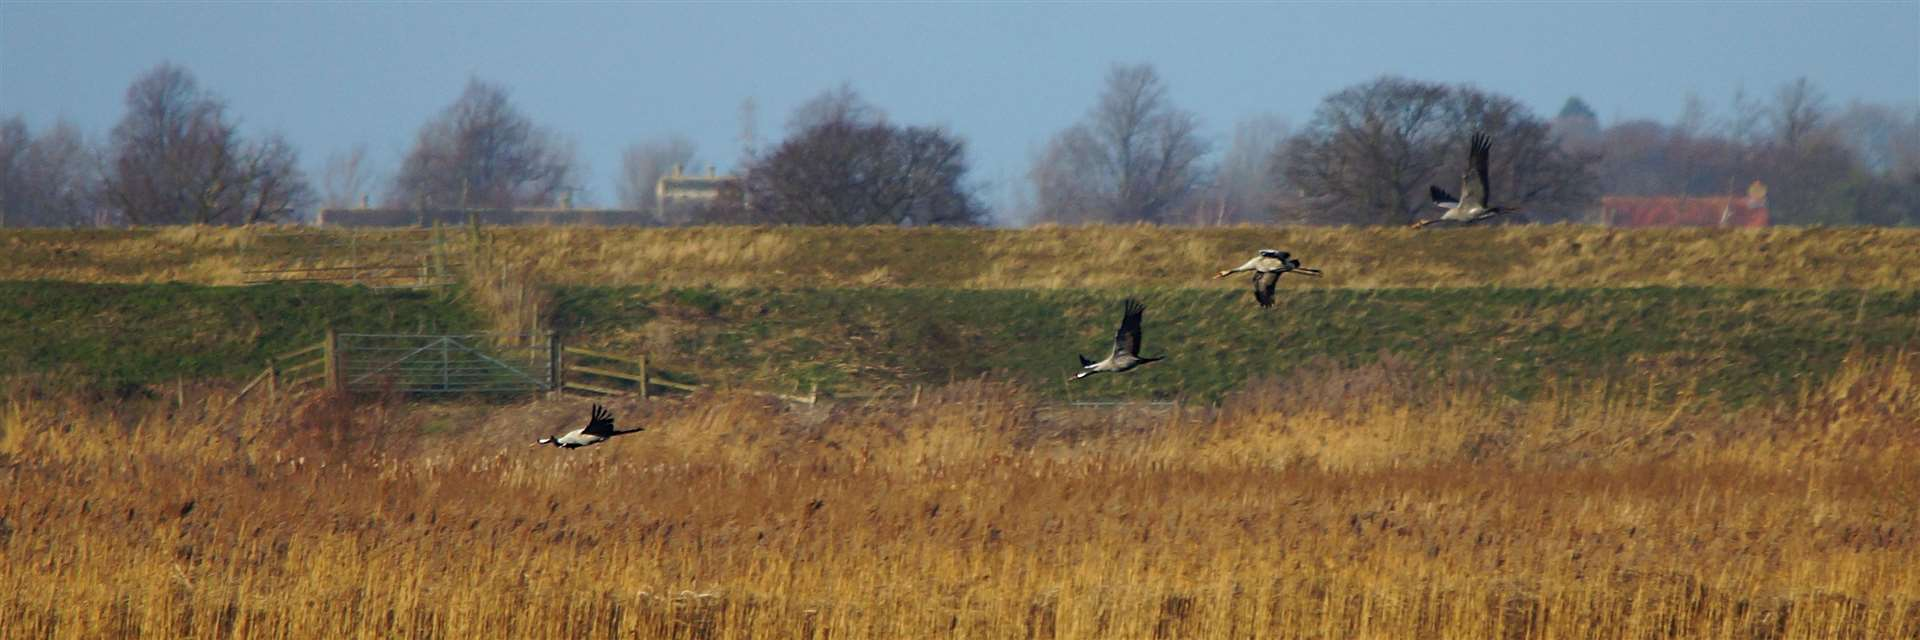 Cranes coming into land at RSPB Nene Washes. Picture: Paul Brackley (42351280)